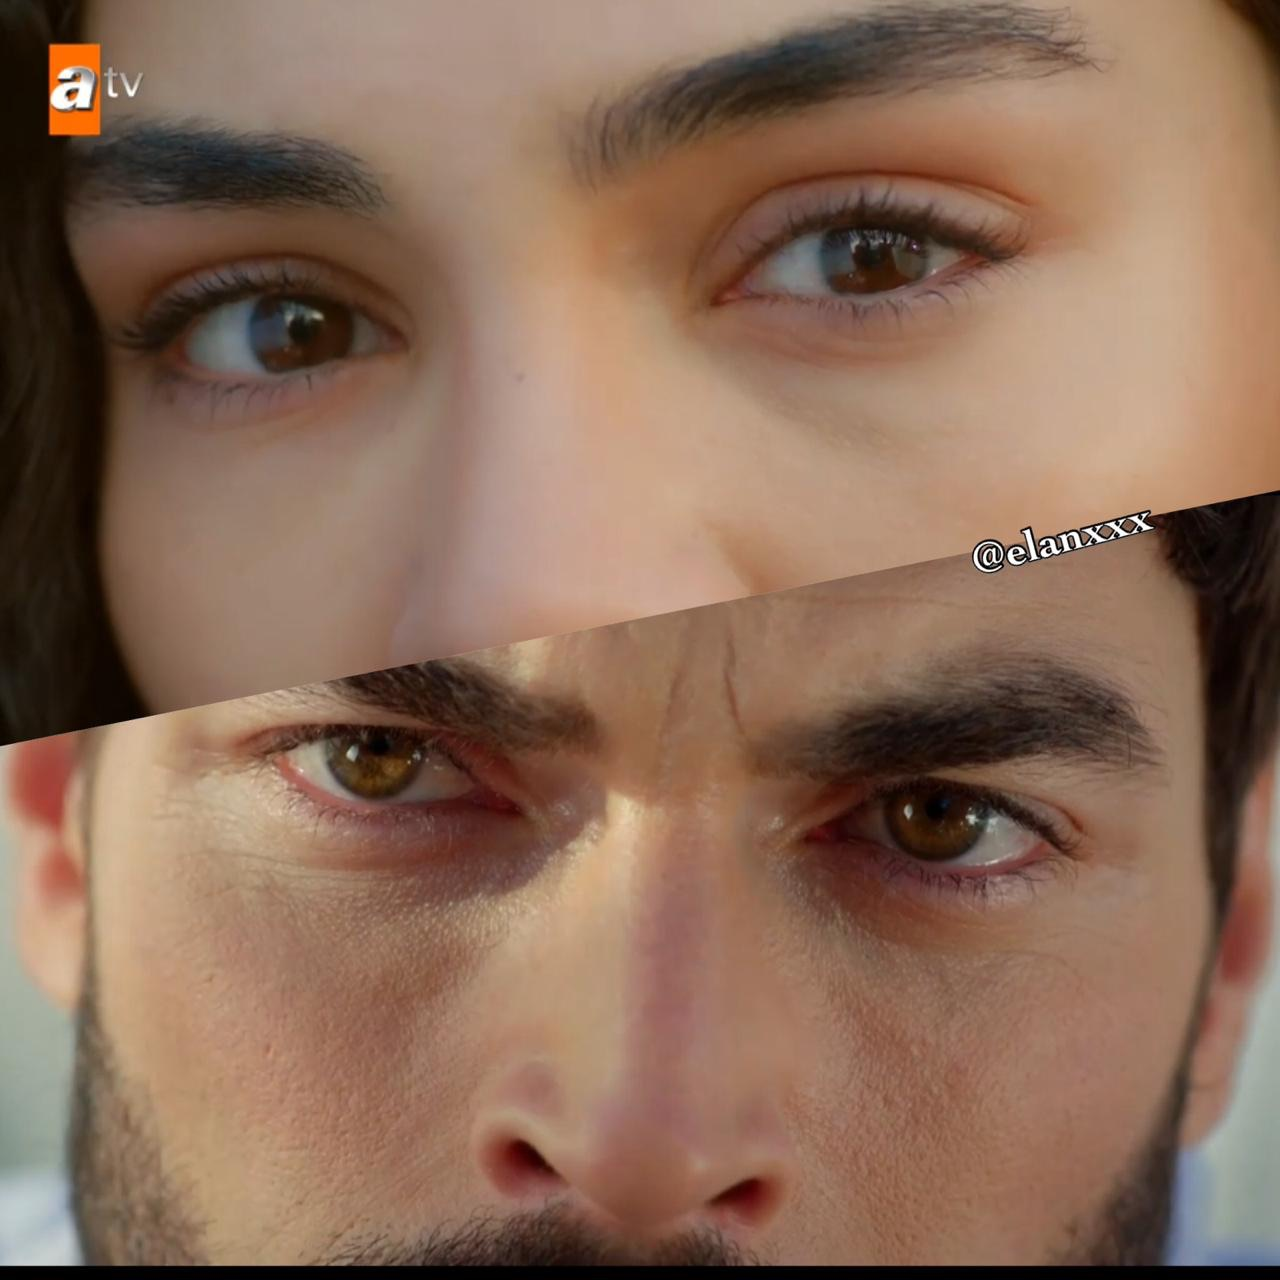 ss, sse, sssgss and hercai